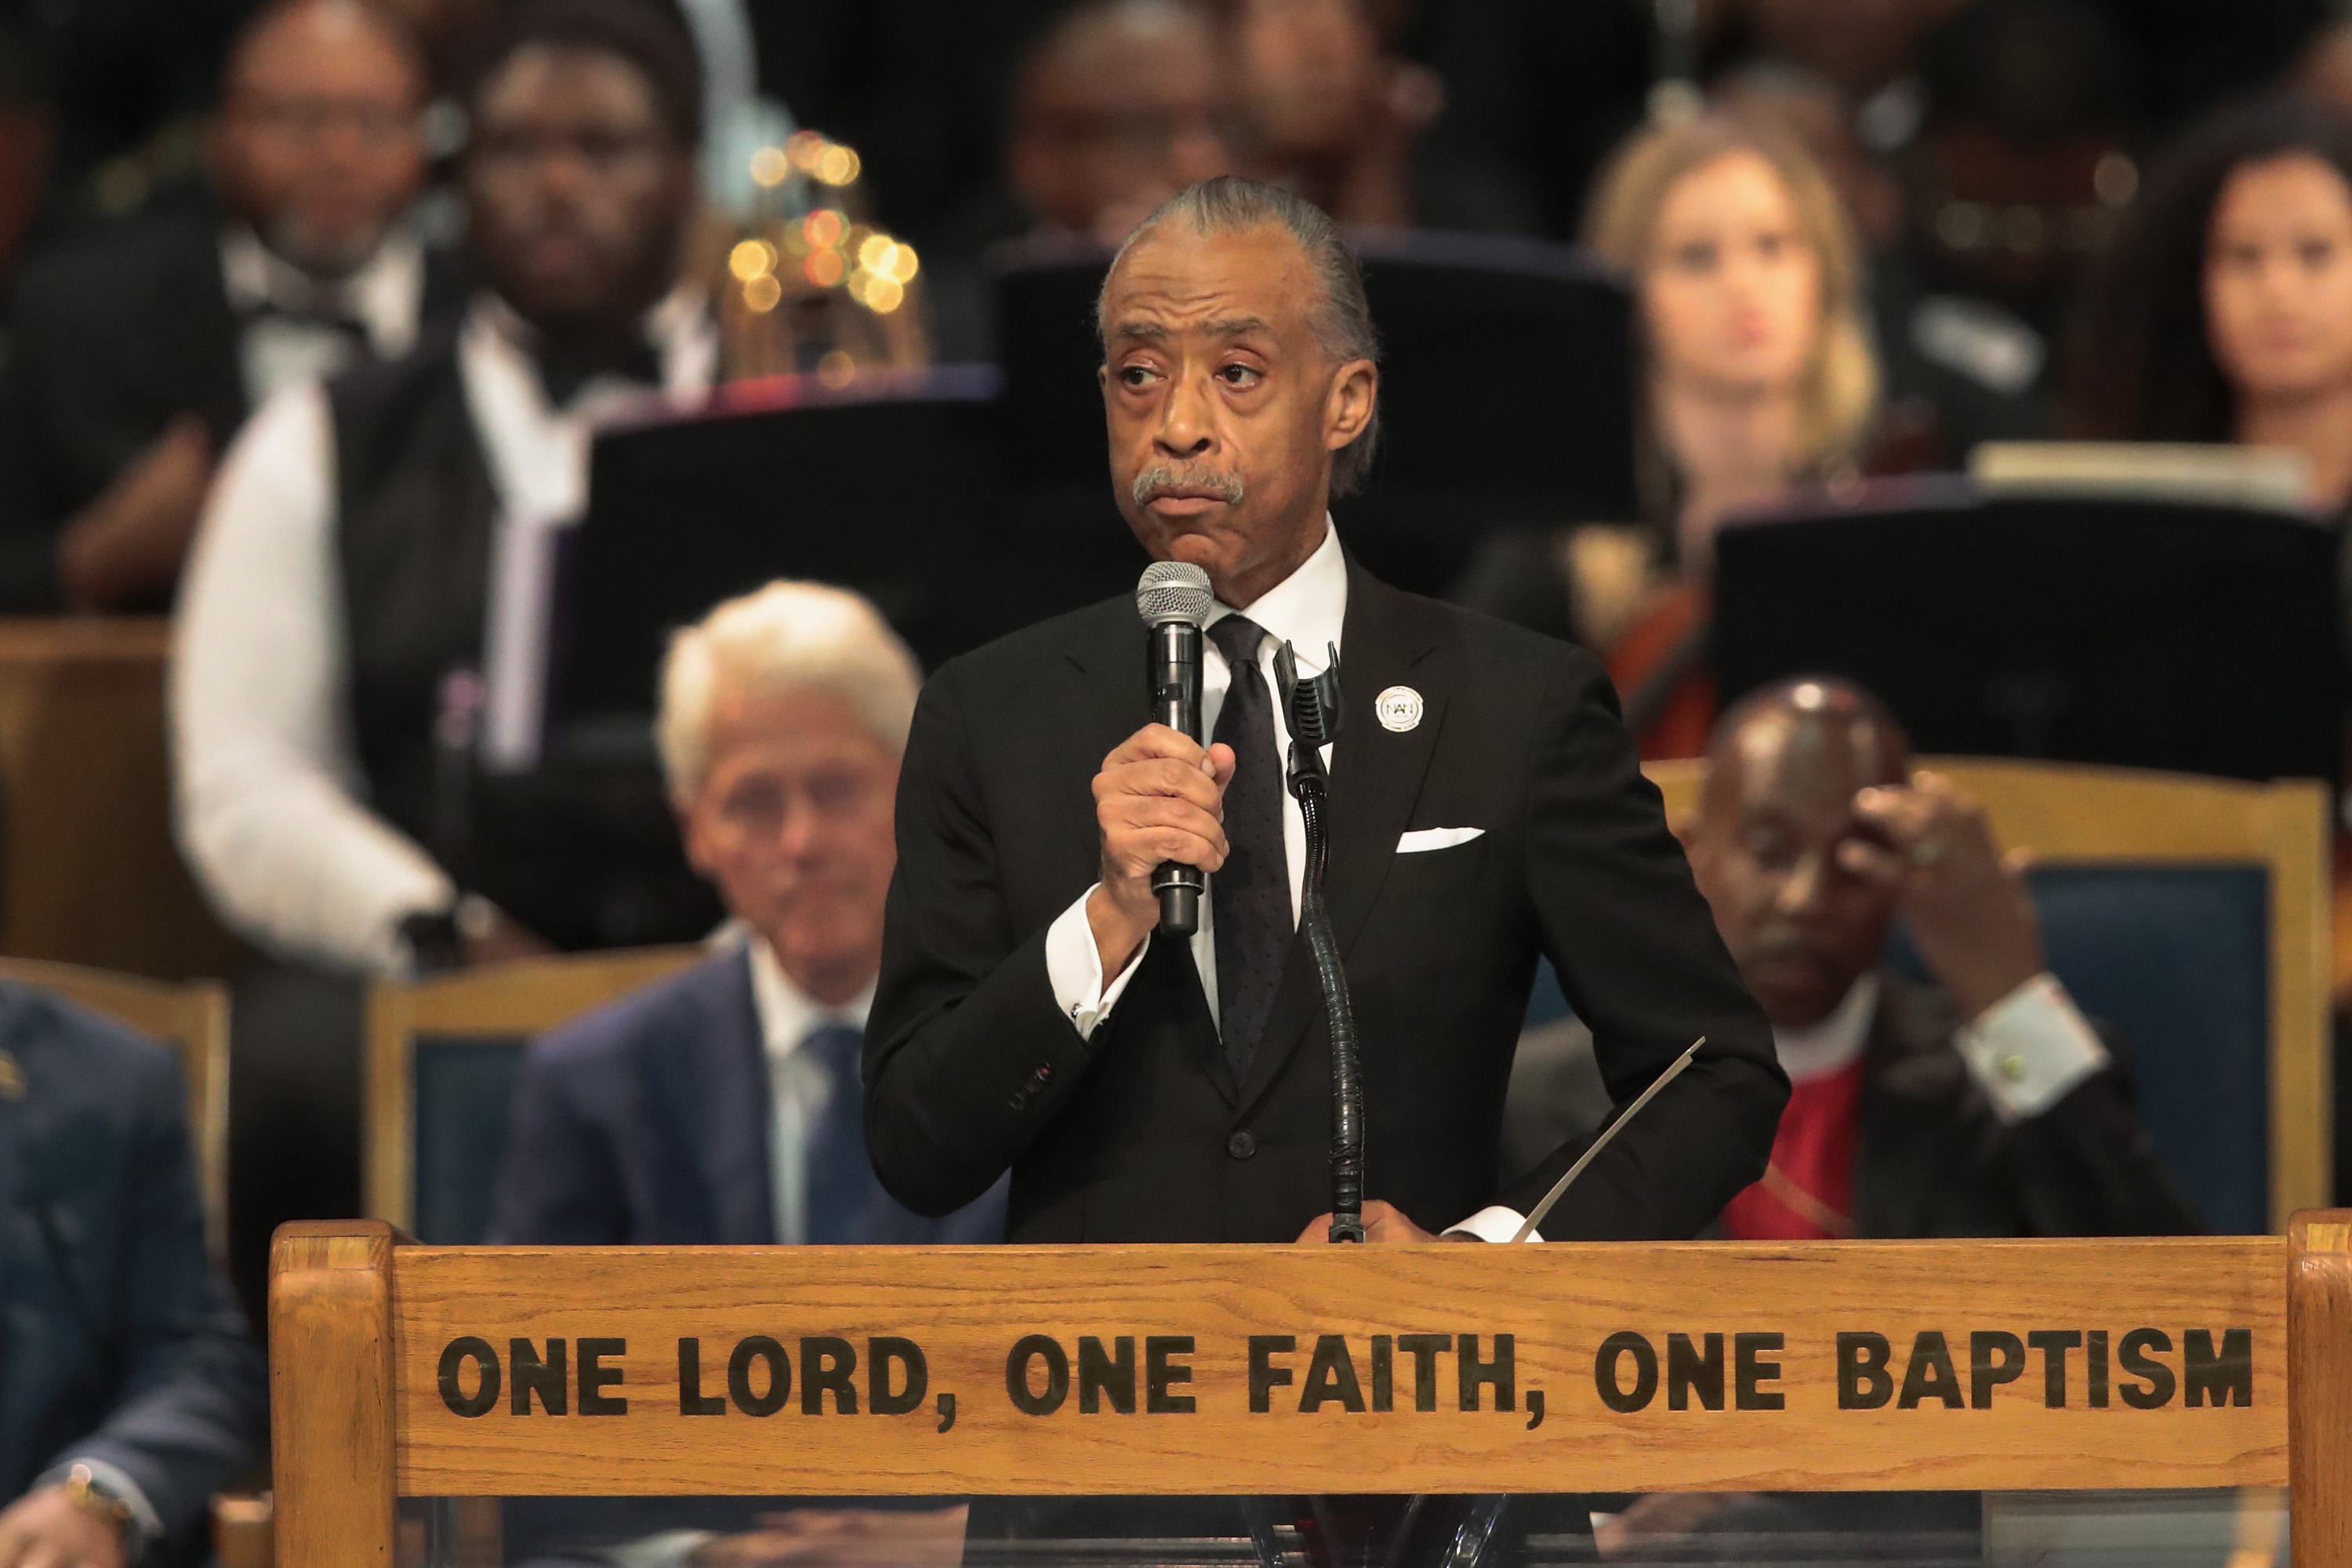 Rev. Al Sharpton speaks at the funeral for Aretha Franklin at the Greater Grace Temple on August 31, 2018 in Detroit, Michigan.